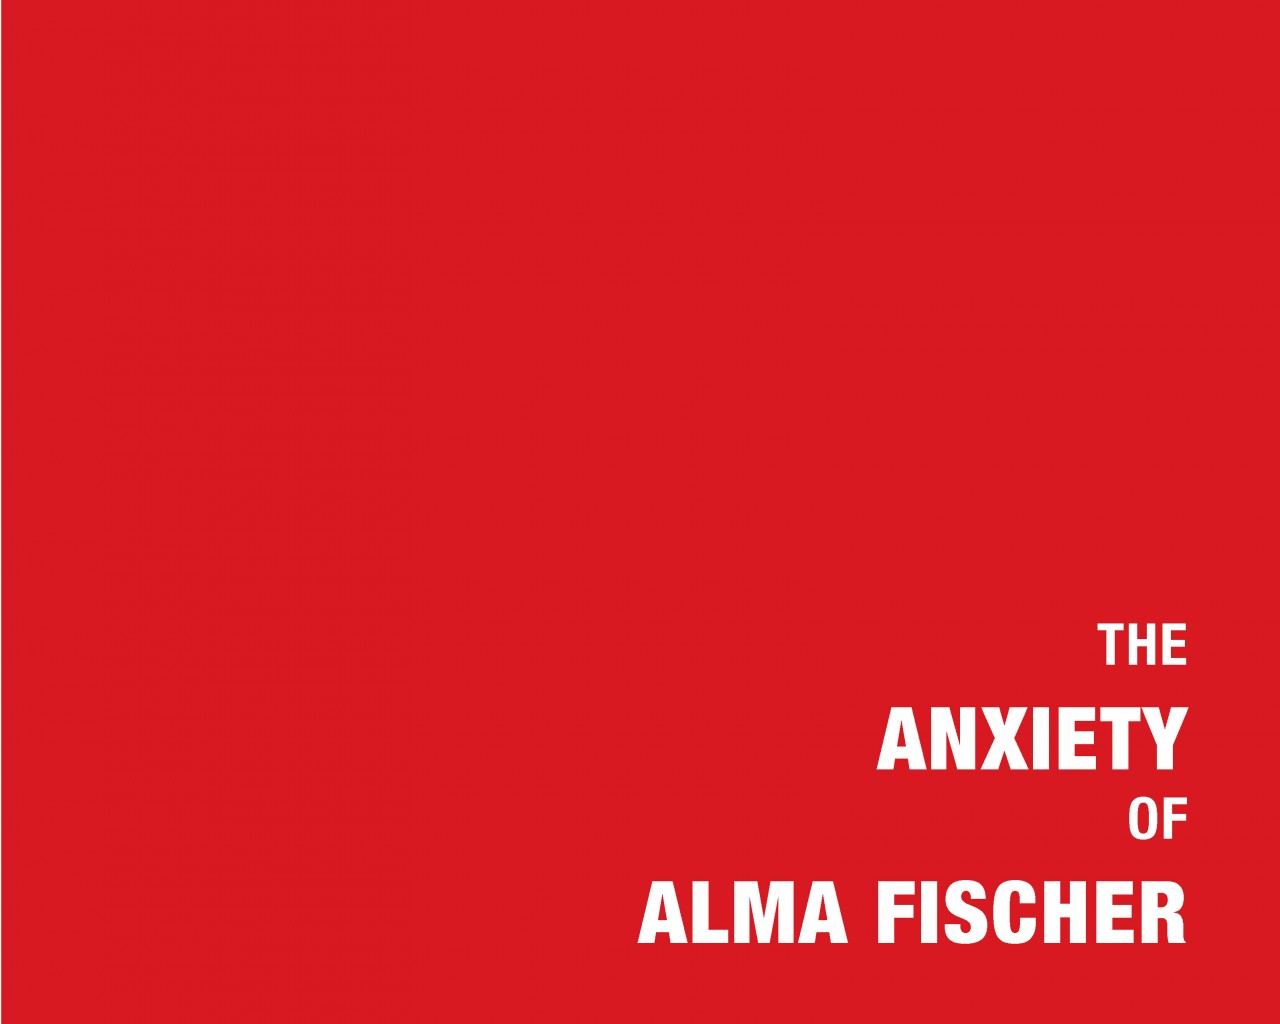 Preview Image 1 for The Anxiety of Alma Fischer: A Webcomic About Anxiety, Depression & Obsessive-Compulsive Disorder